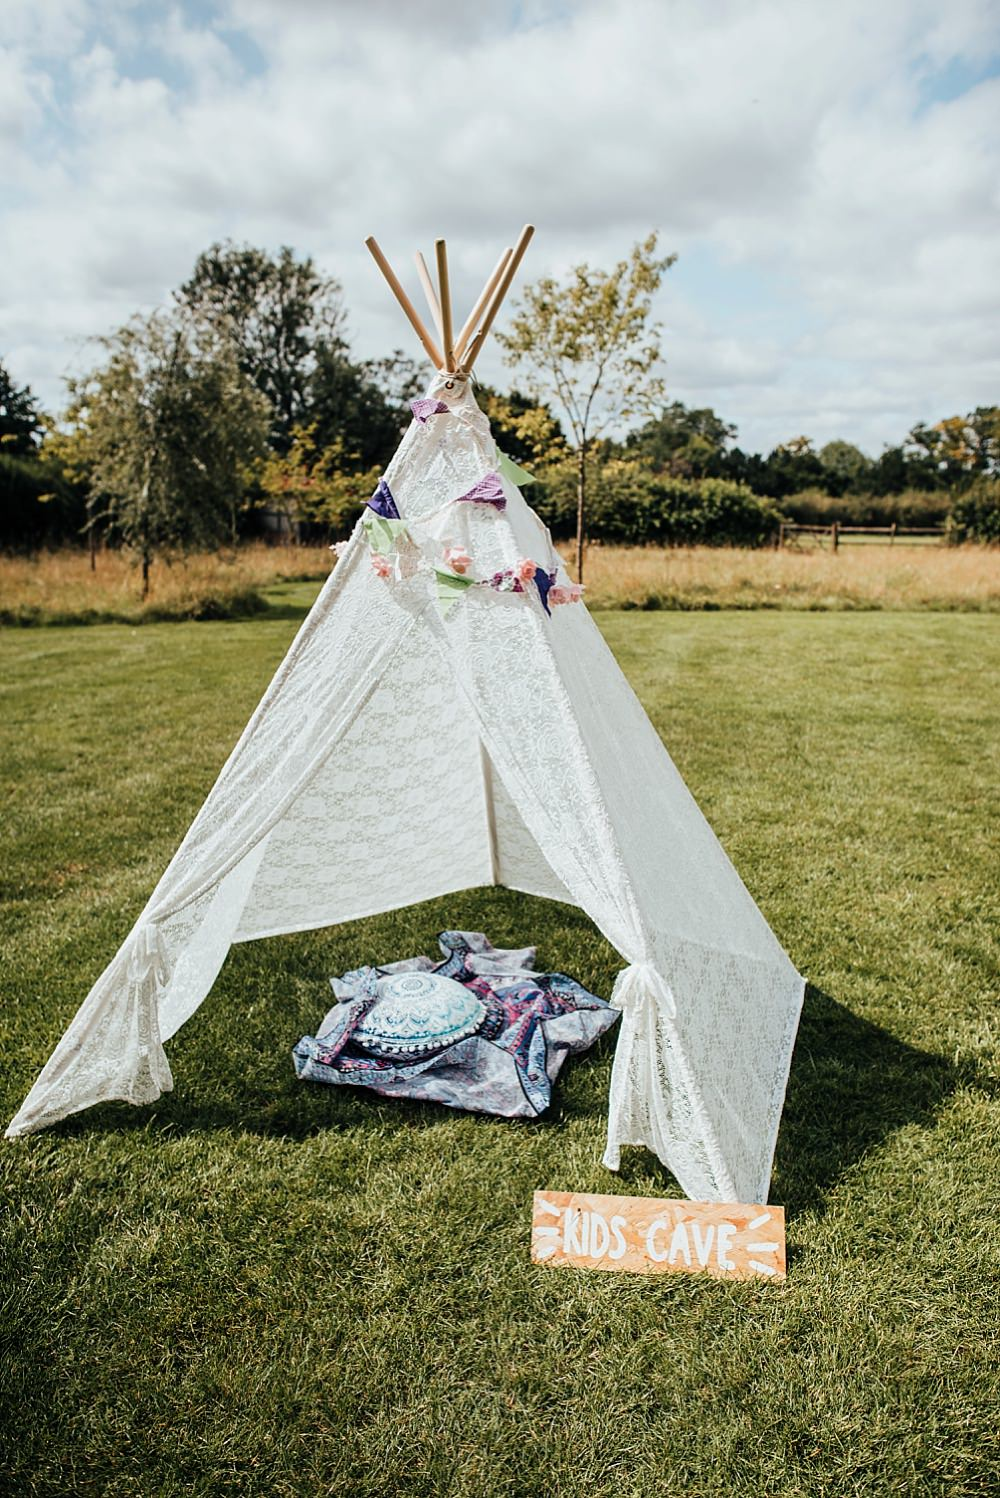 Kids Tipi Tent Boho Rustic Wedding This and That Photography